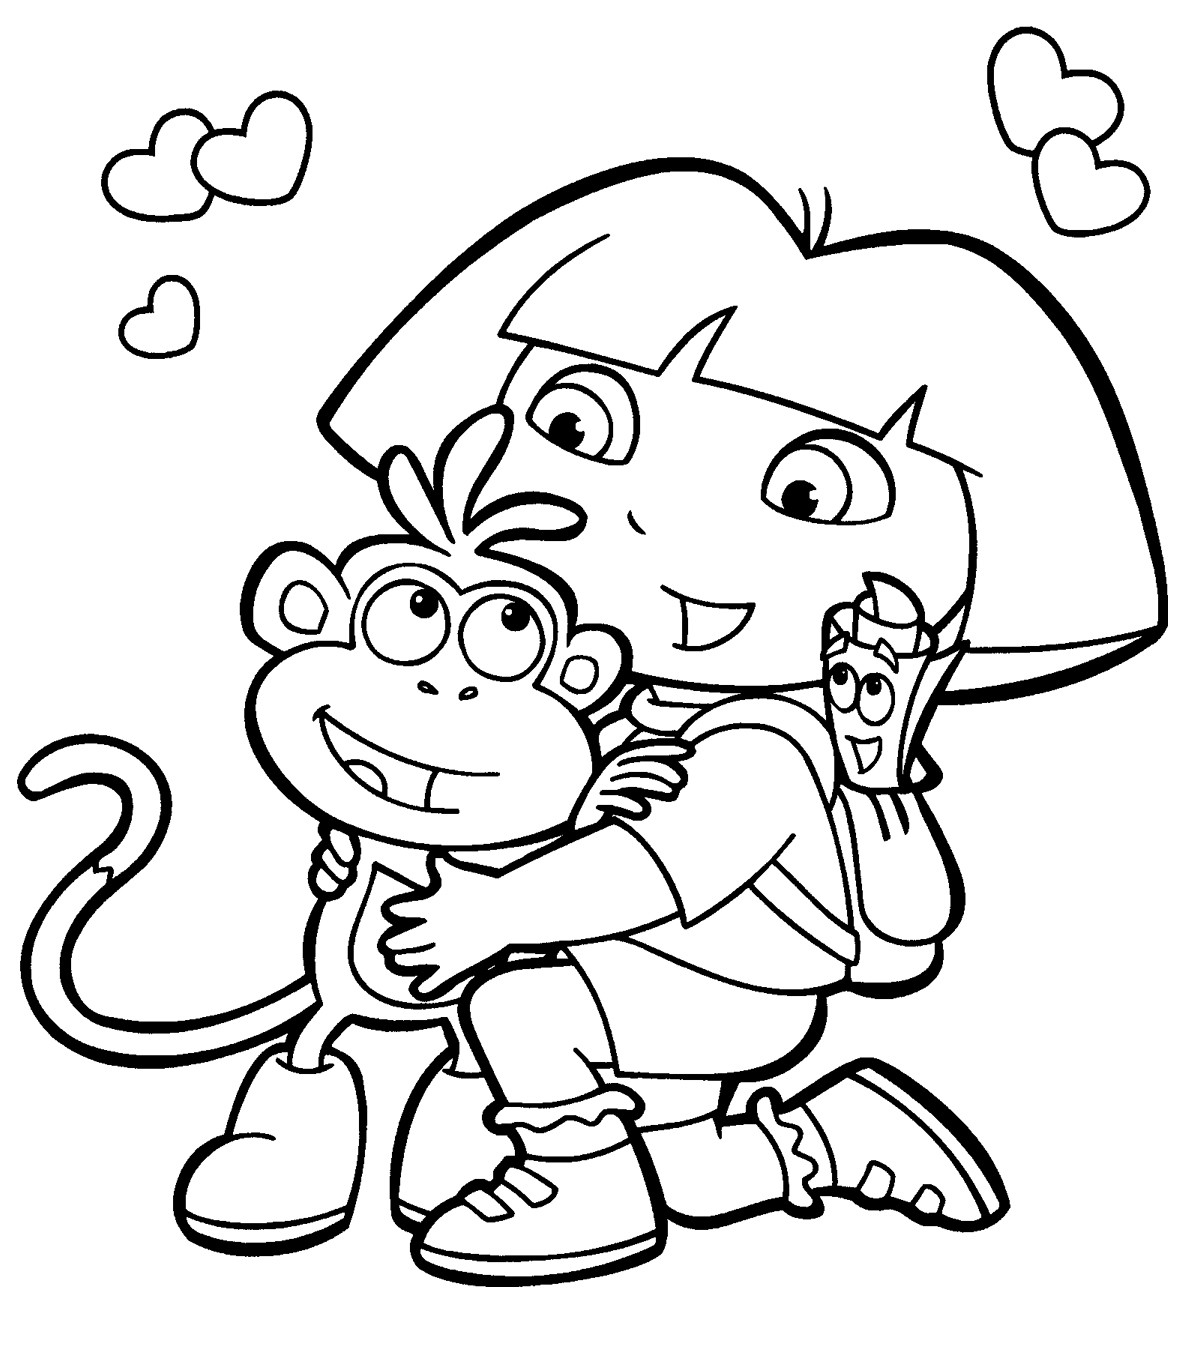 Free Coloring Pages For Girls Dora  Dora the Explorer Coloring Pages 15